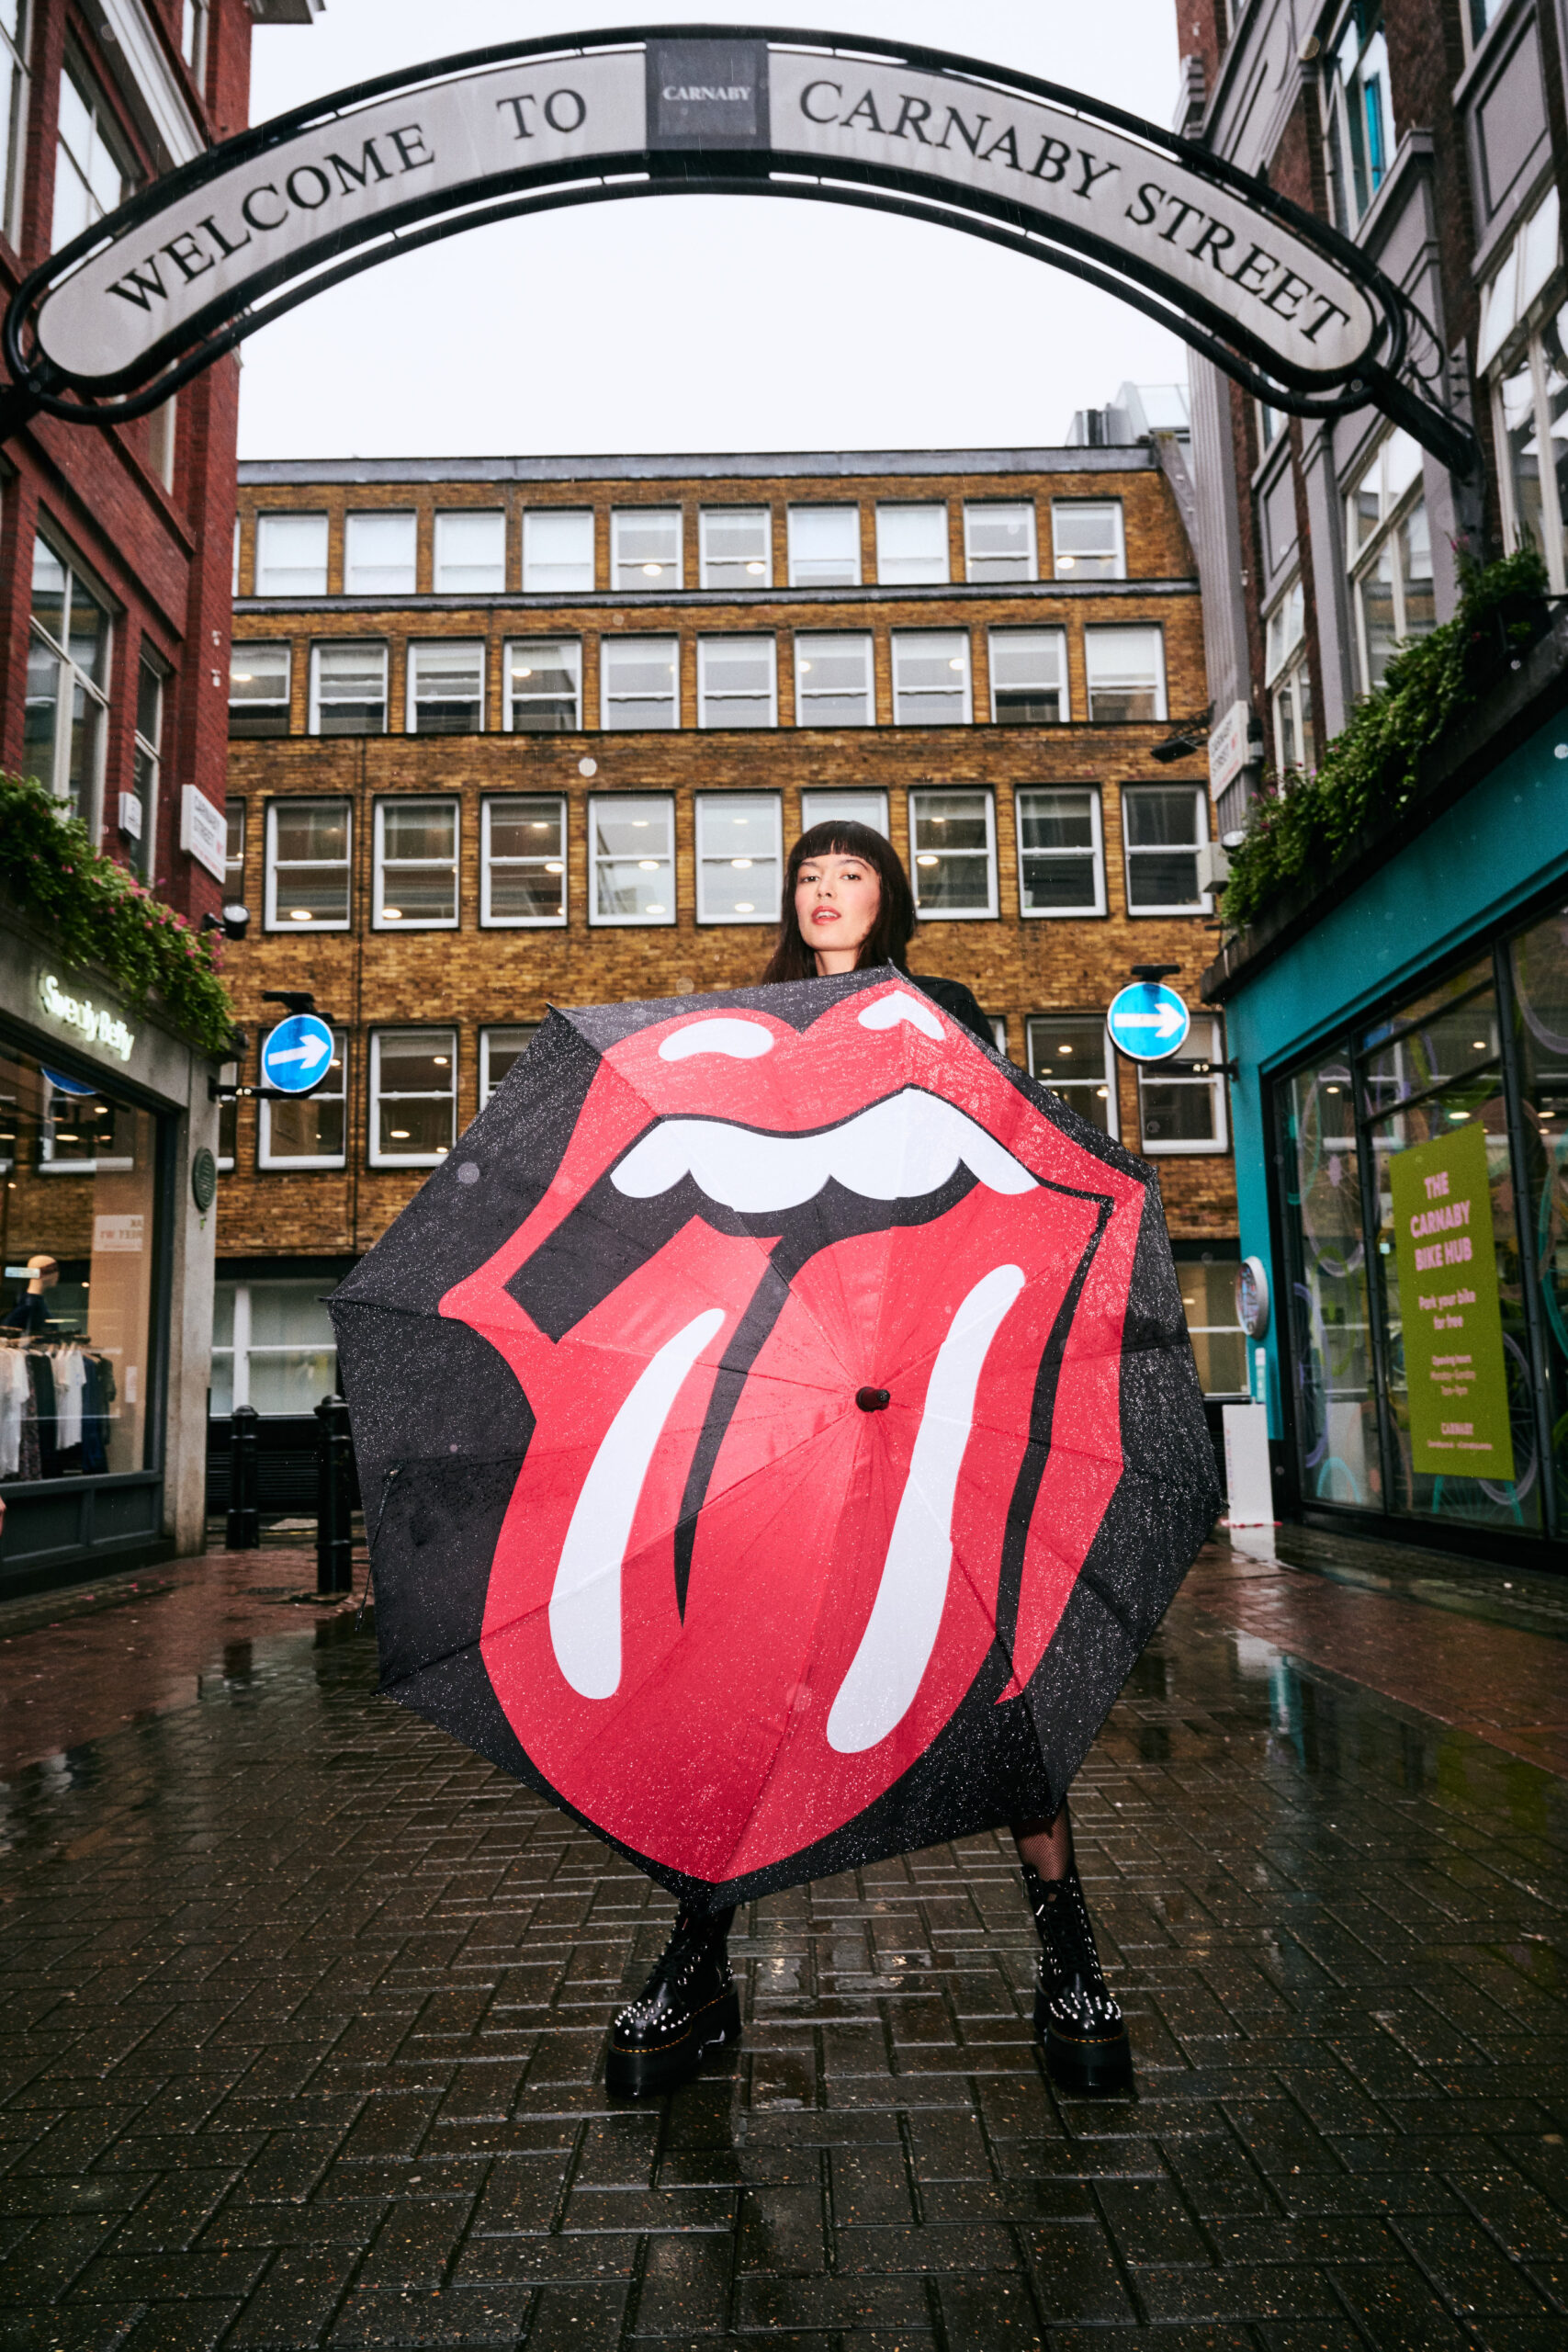 Rock 'n' roll legends, the Rolling Stones will be opening a new flagship store, 'RS No. 9 Carnaby' at 9 Carnaby Street in London's Soho.